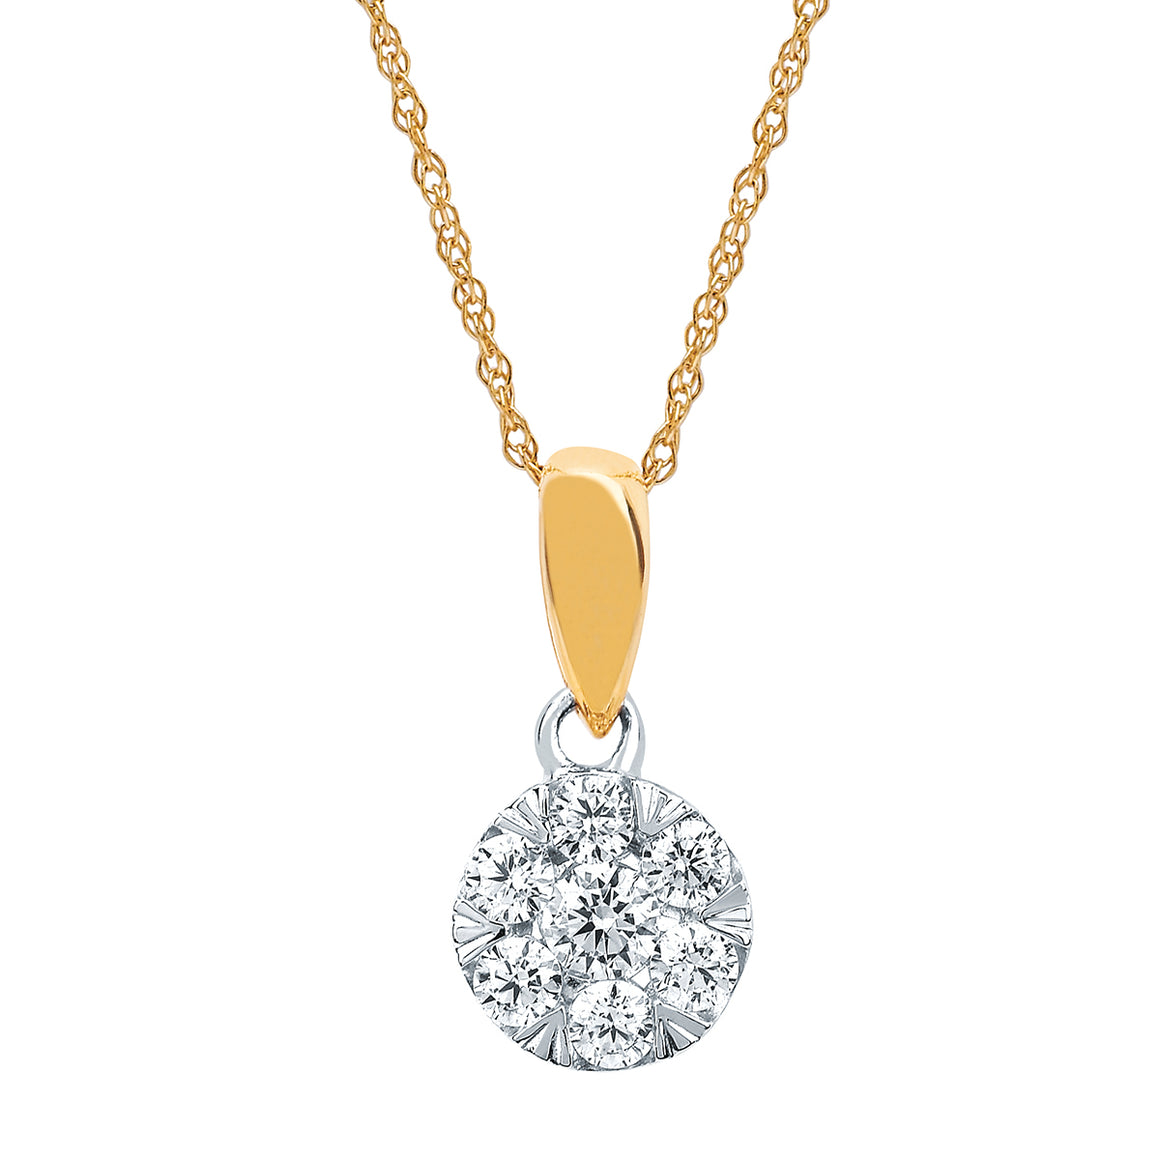 Diamond Cluster Necklace Two-Tone White and Yellow Gold - Talisman Collection Fine Jewelers